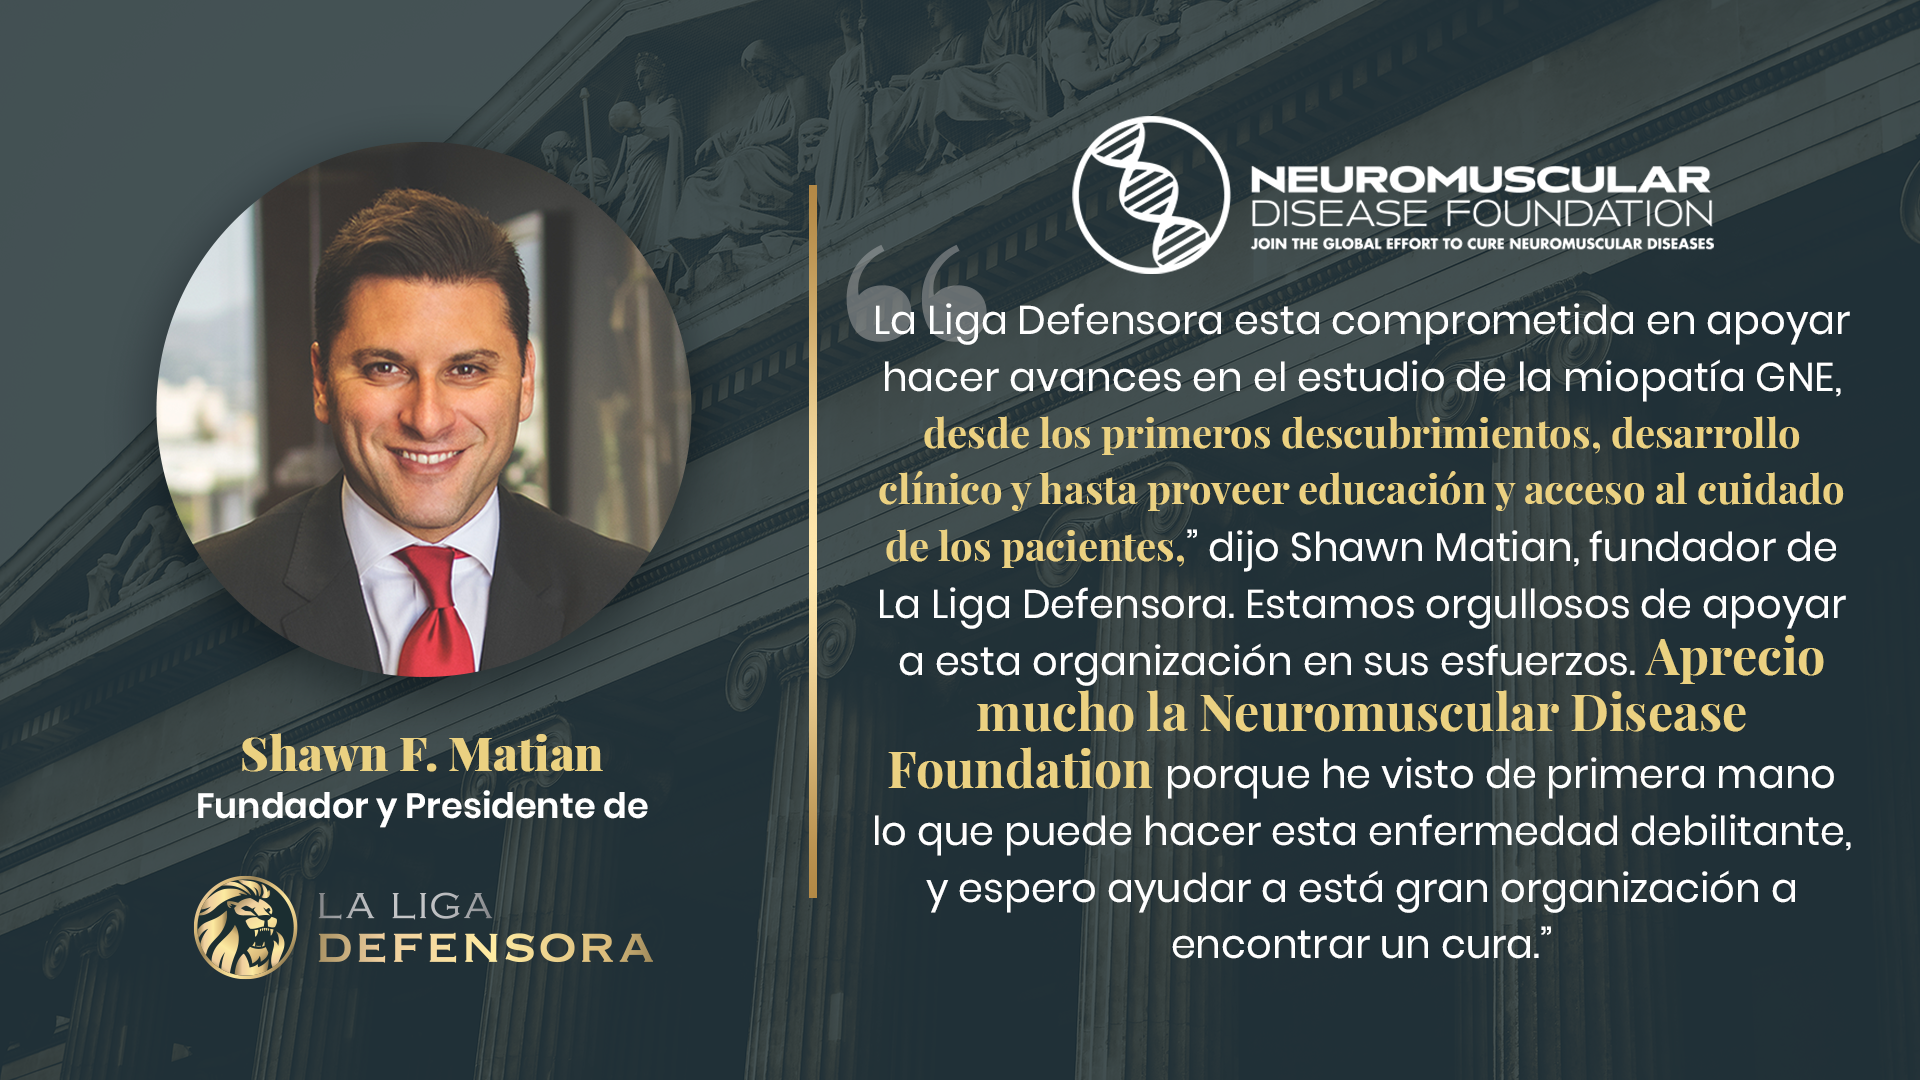 Shawn Matian, fundador de La Liga Defensora hace una donacion a la Neuromuscular Disease Foundation